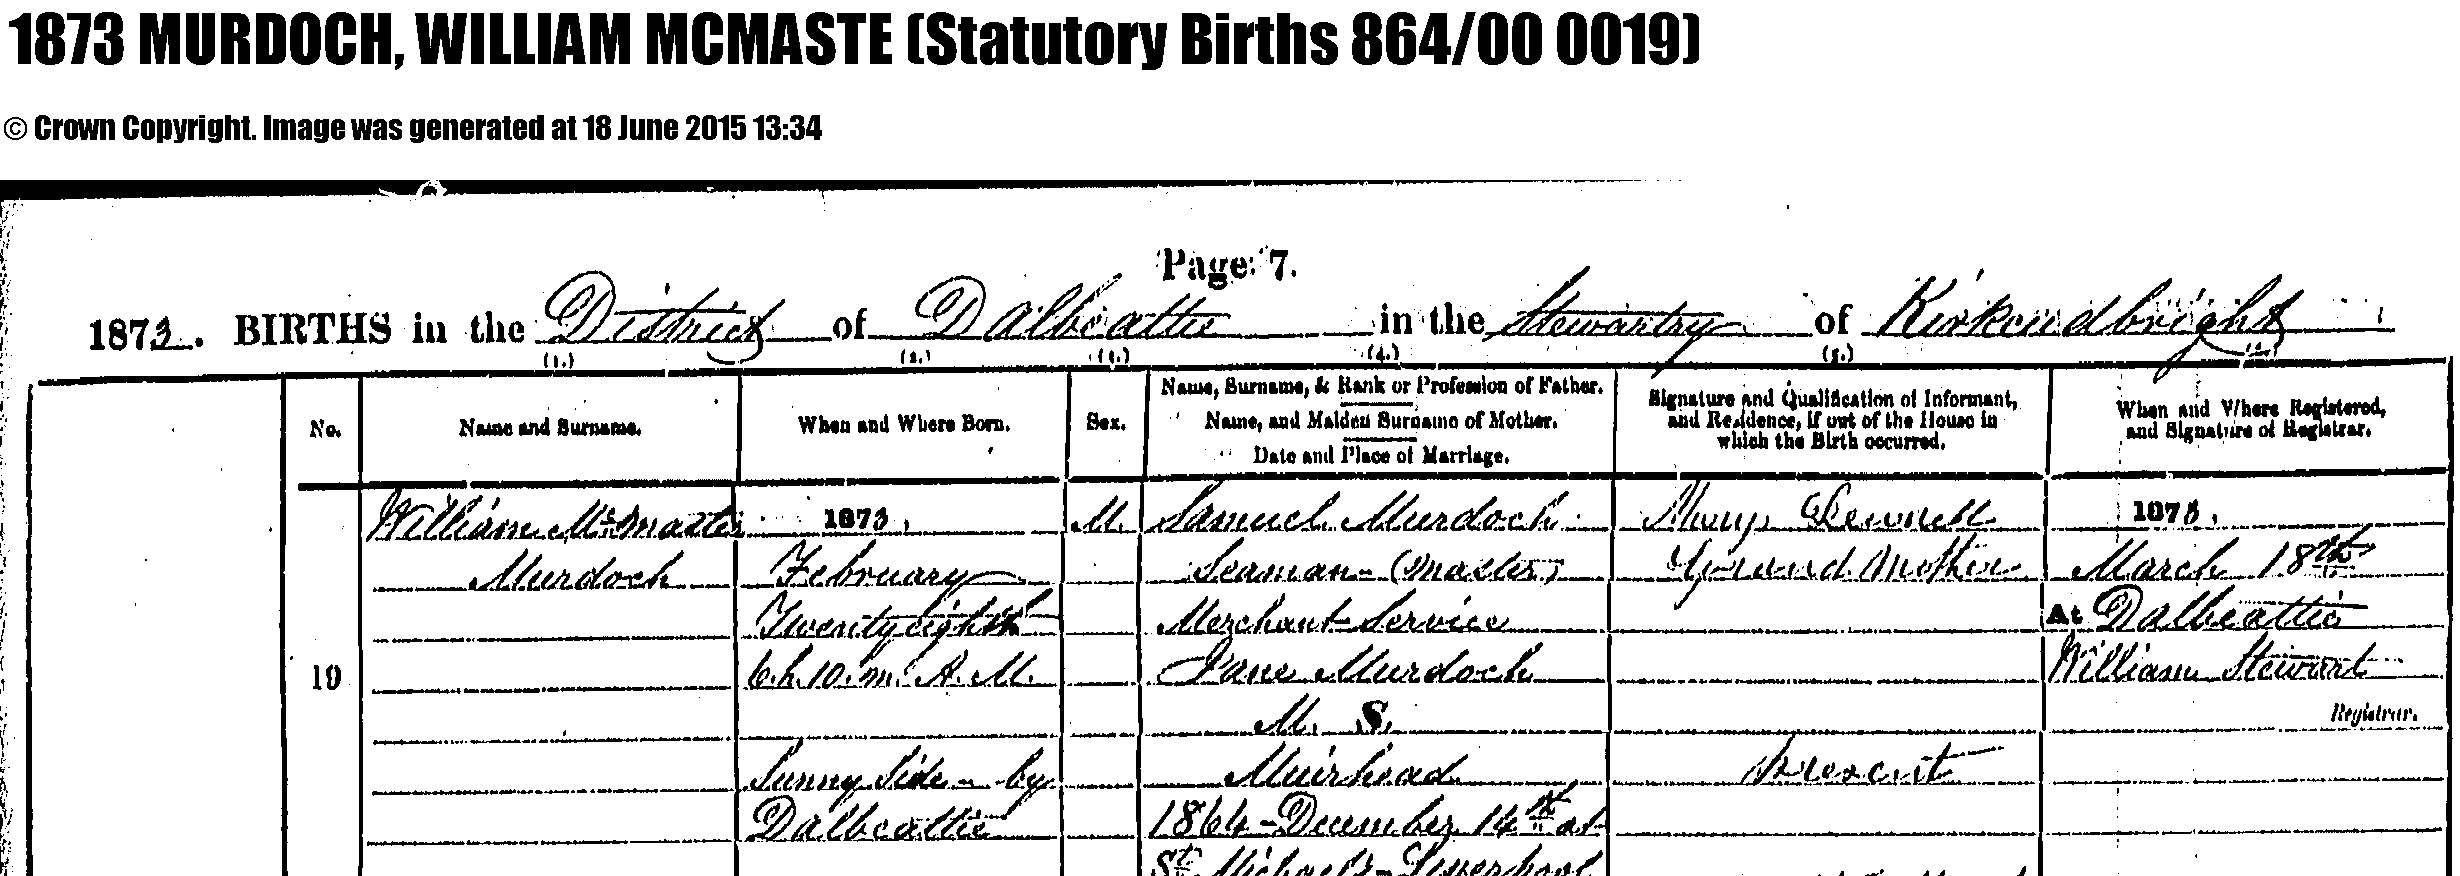 Biographie de William Murdoch - Page 5 Murdoch_birth_certificate